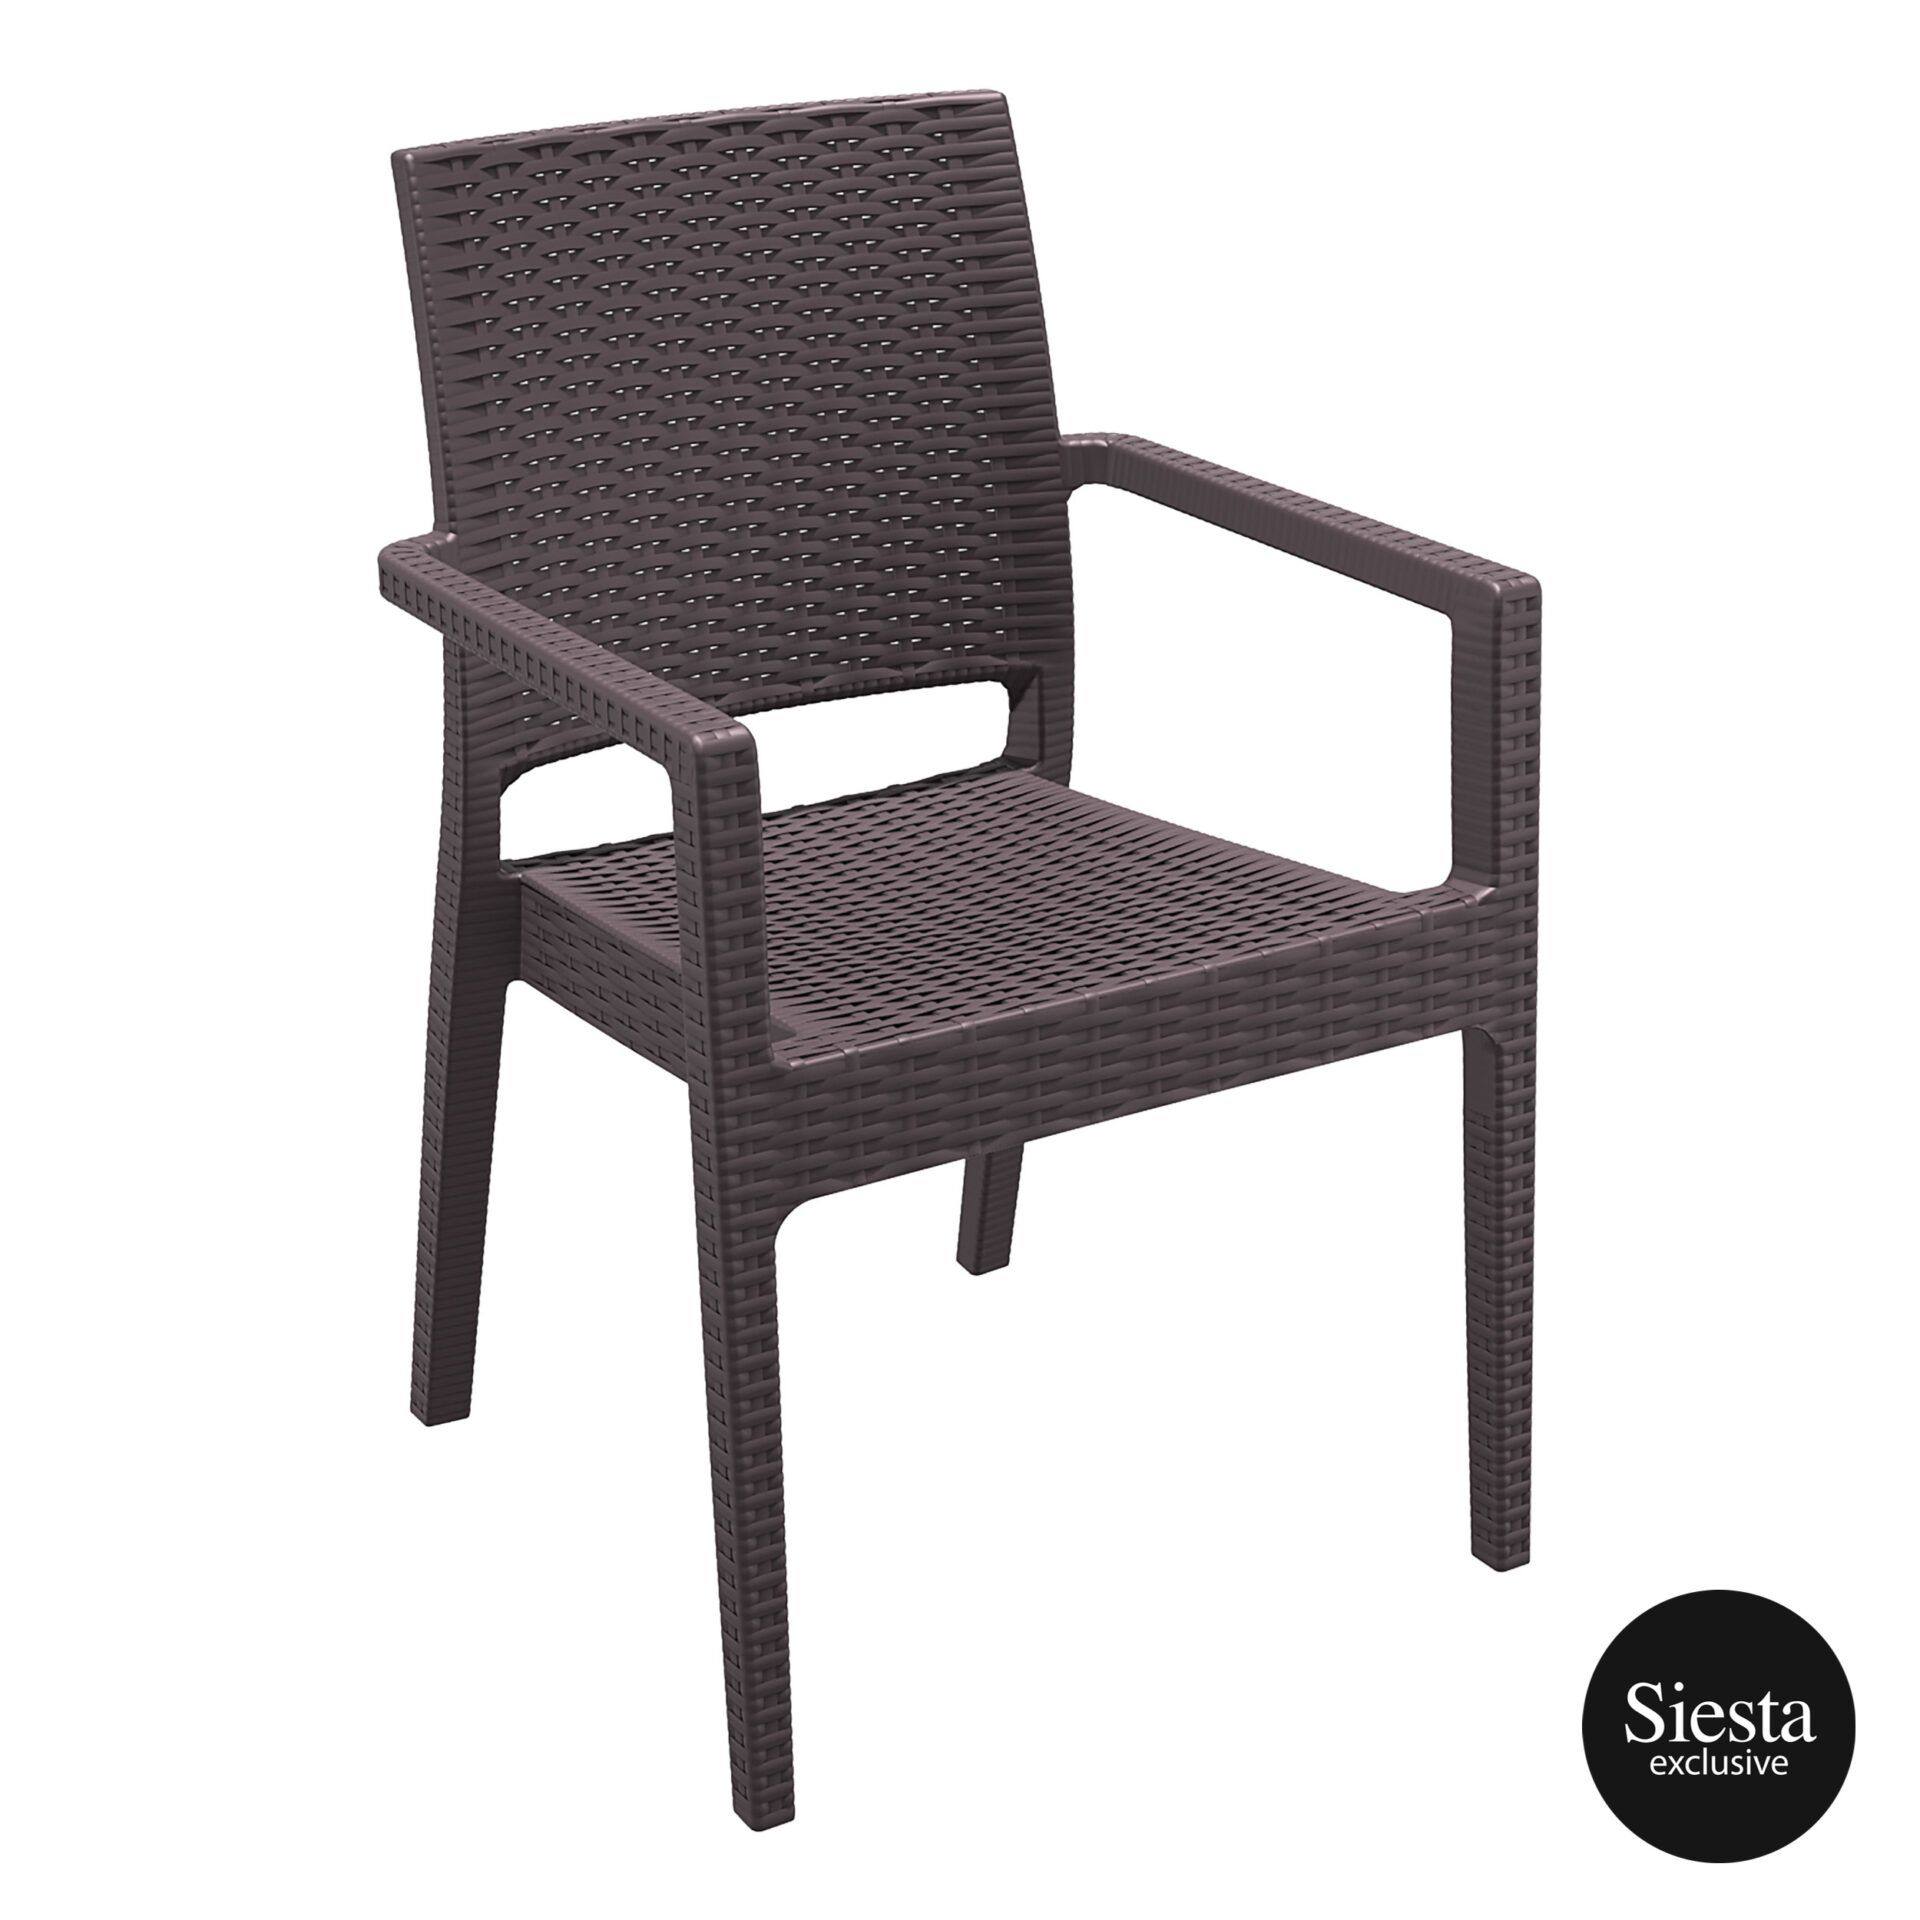 outdoor seating resin rattan ibiza armchair brown front side 1